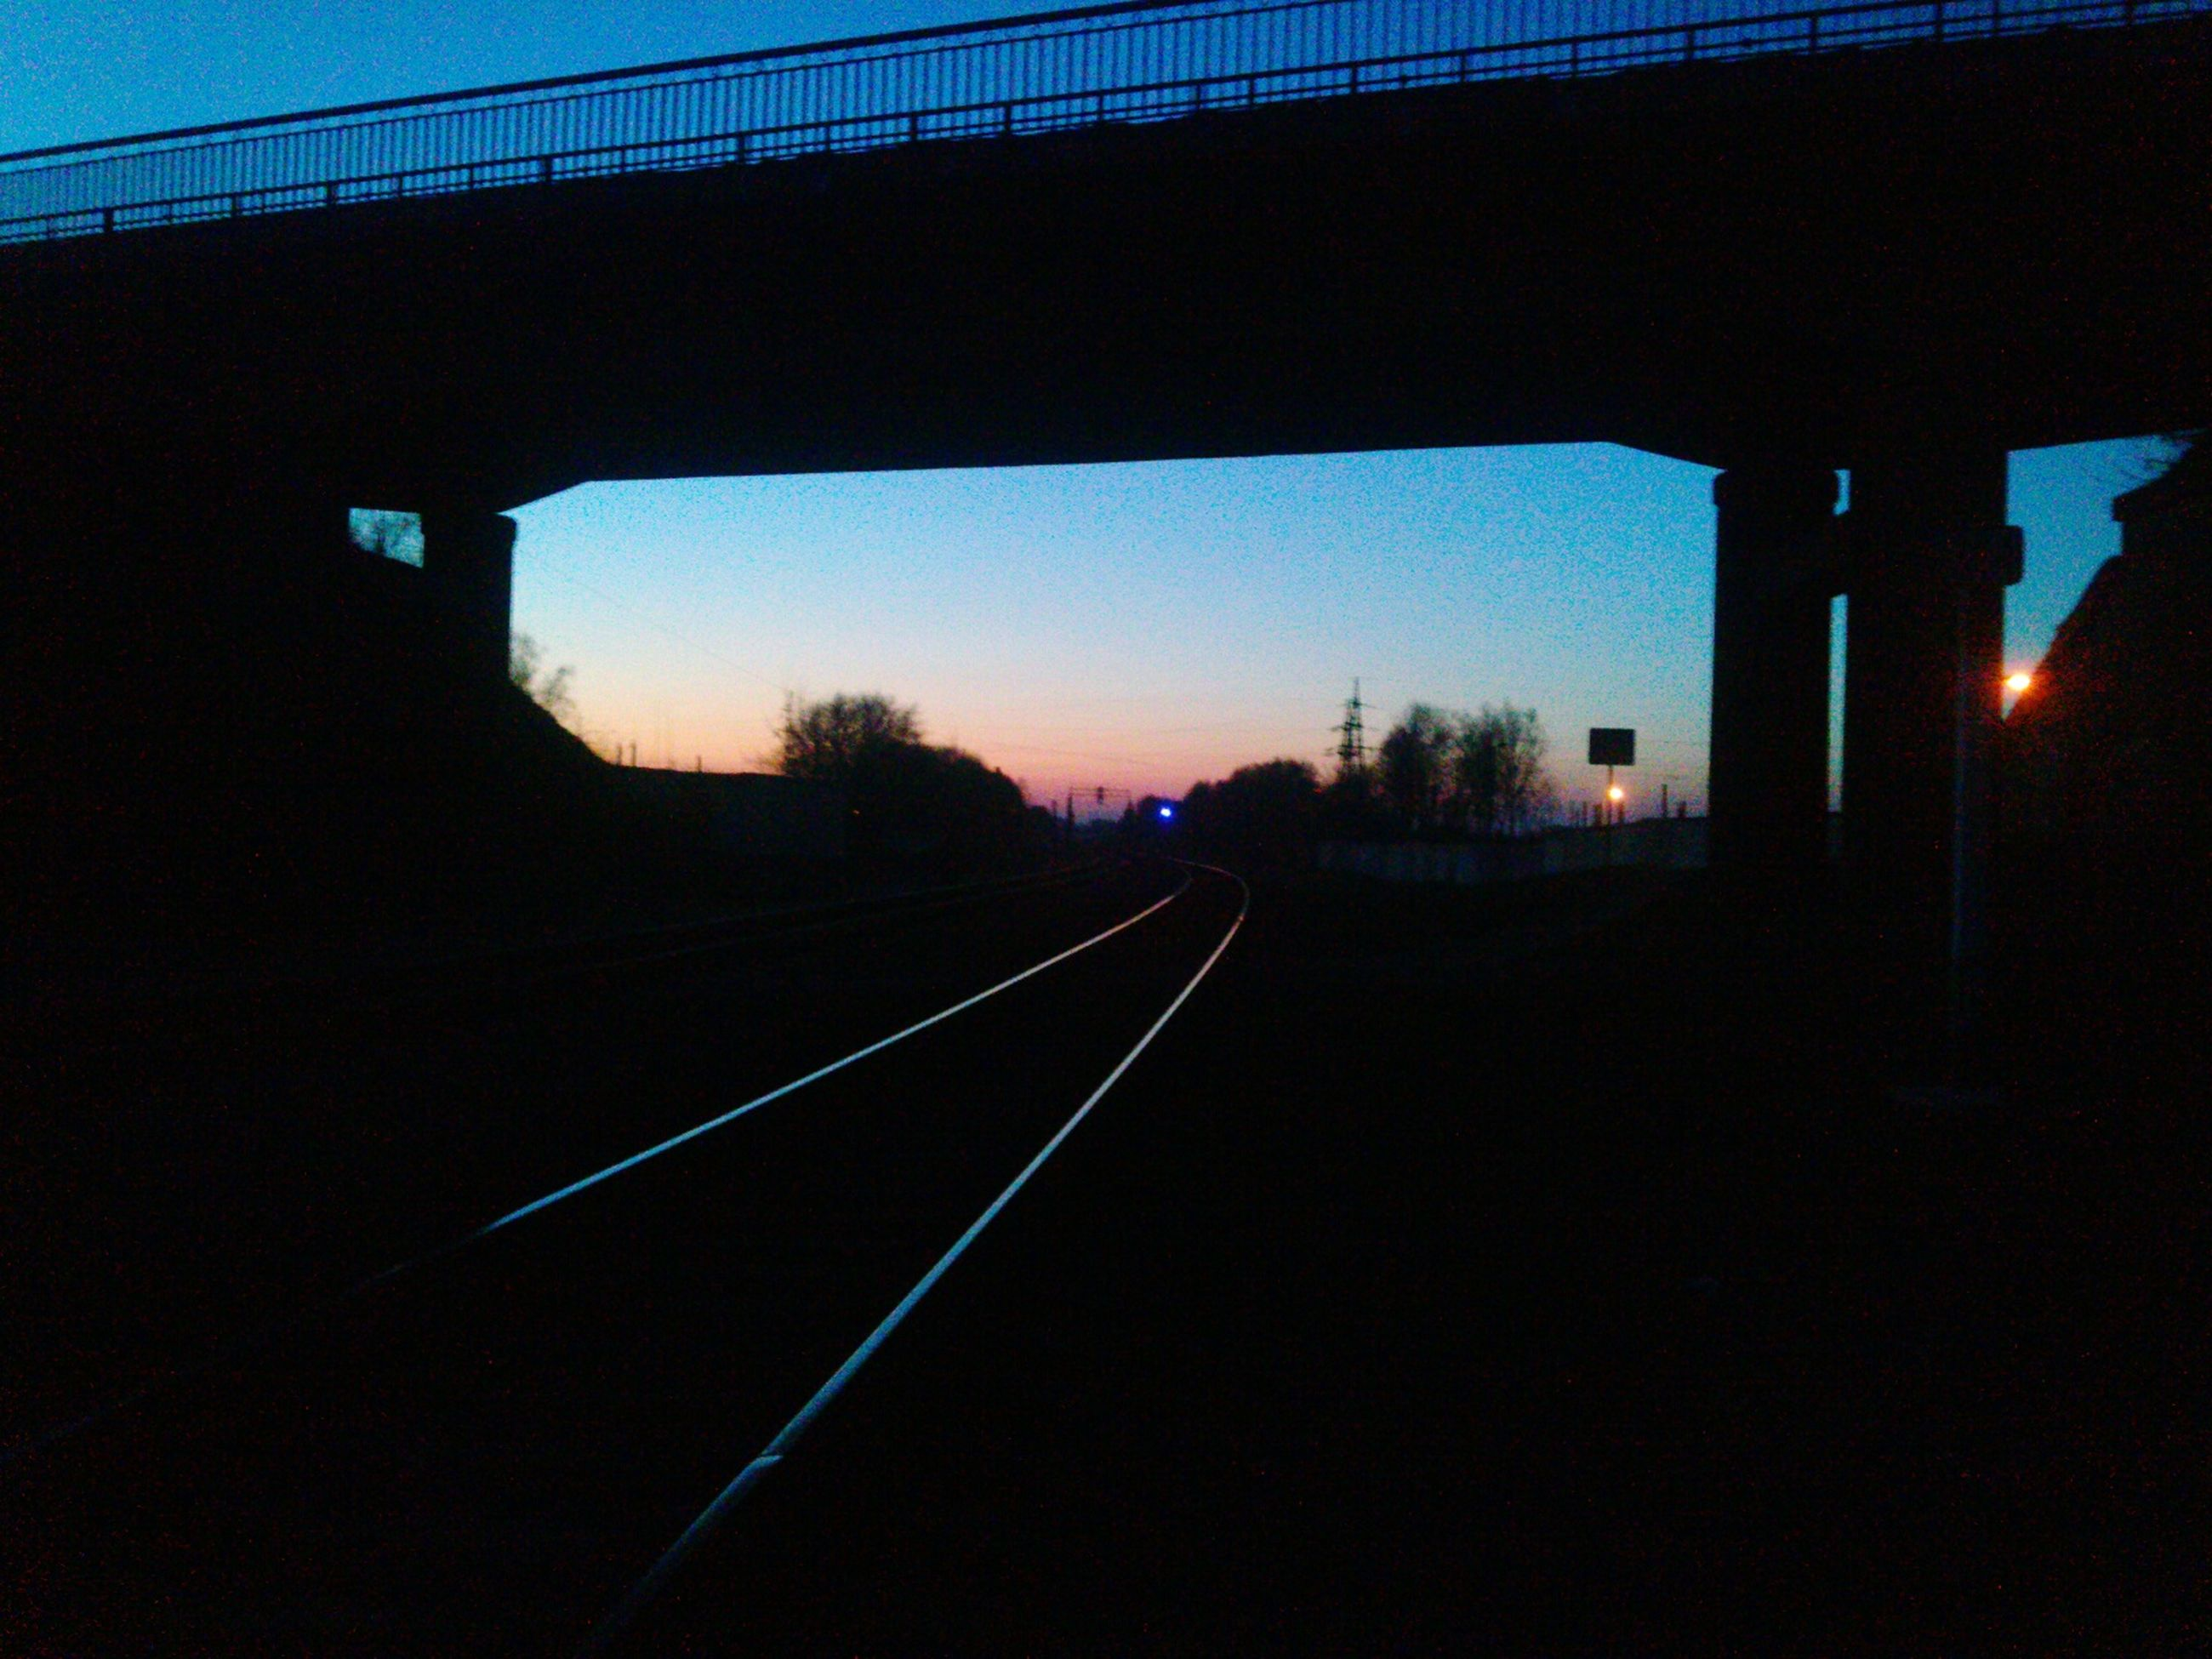 transportation, sunset, the way forward, built structure, connection, railroad track, architecture, diminishing perspective, sky, rail transportation, vanishing point, bridge - man made structure, road, silhouette, long, sunlight, no people, dusk, empty, outdoors